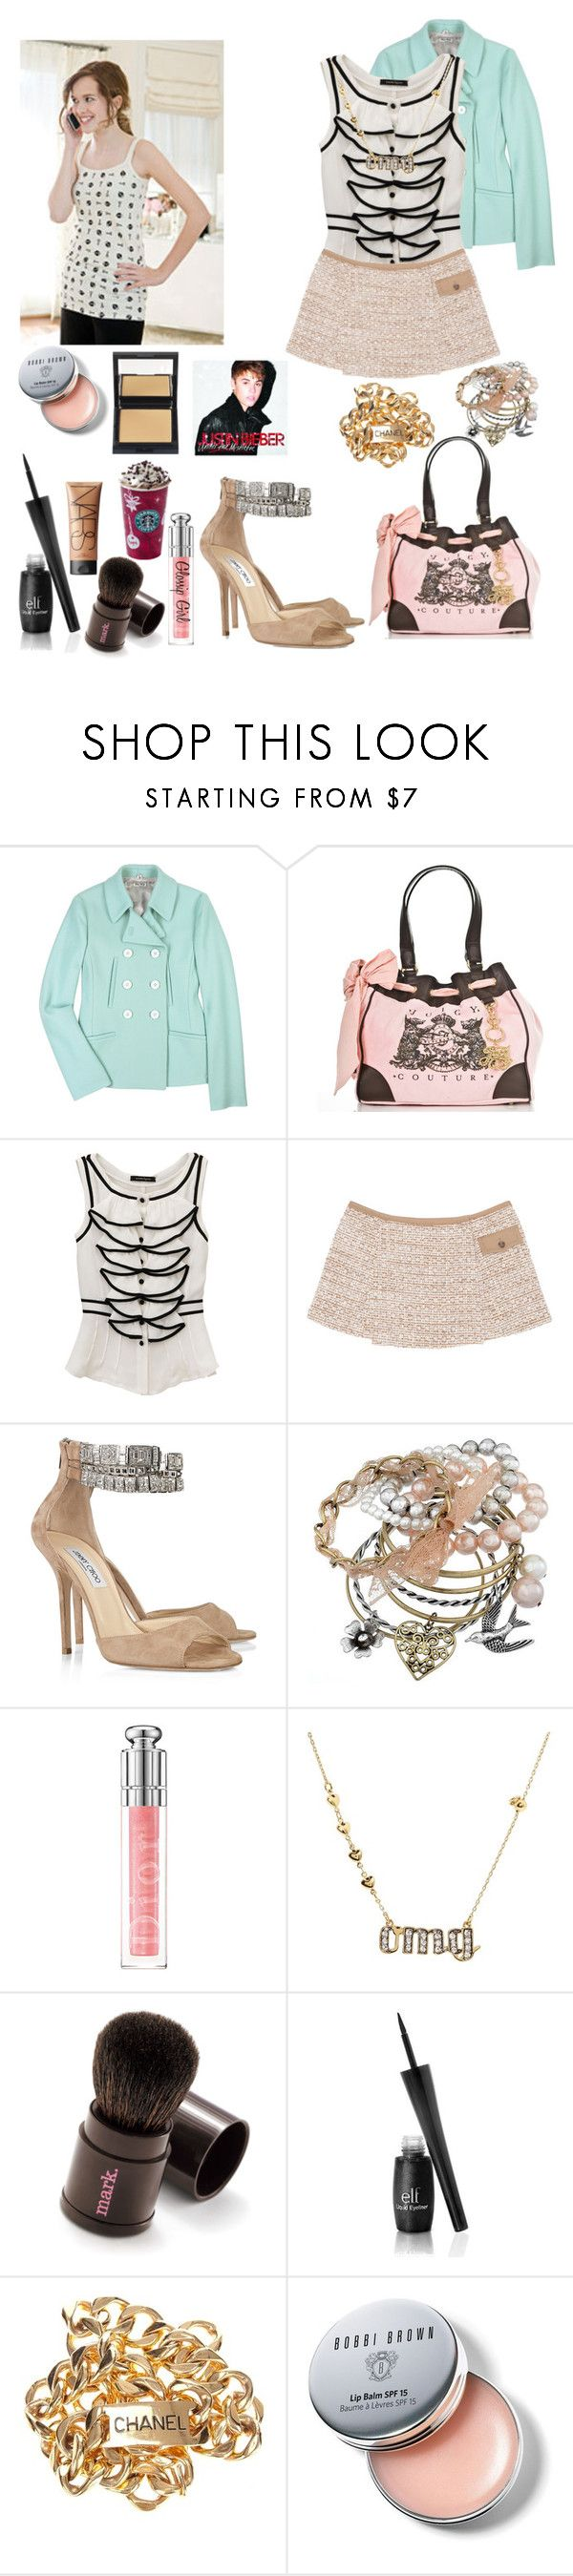 """""""Shopping"""" by massie-elizabeth-block ❤ liked on Polyvore featuring Miu Miu, Juicy Couture, Jimmy Choo, Miss Selfridge, Christian Dior, ELF Cosmetics, Chanel, Bobbi Brown Cosmetics, NARS Cosmetics and Stetson"""